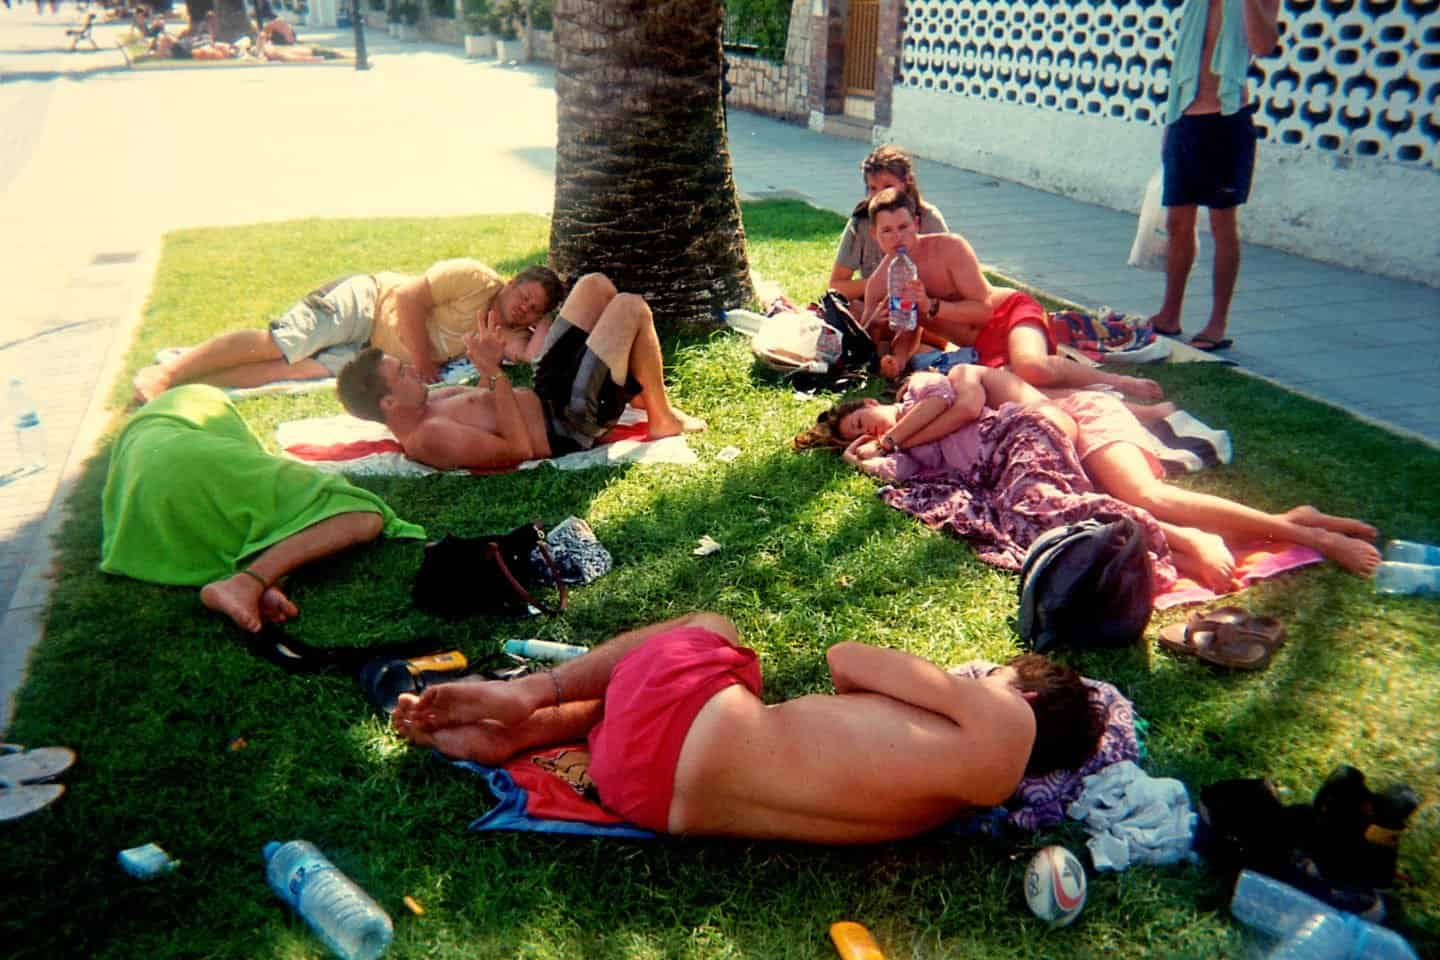 Sleeping at Sleeping at Benicassim Festival